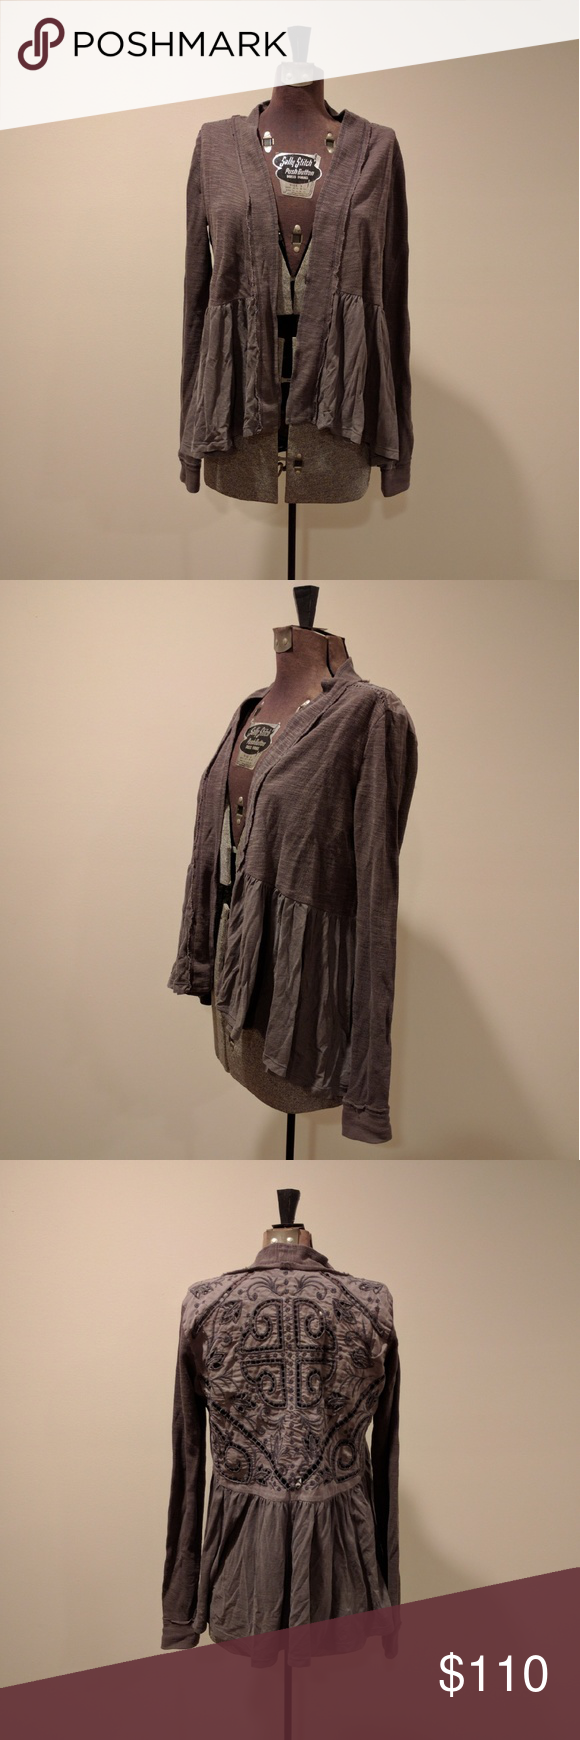 Anthropologie Storystitch Cardigan in Taupe Grayish open cardigan with beautiful window embroidery on the back. New without tags, never washed or worn. Size xs. Saturday Sunday brand for Anthropologie. Anthropologie Sweaters Cardigans